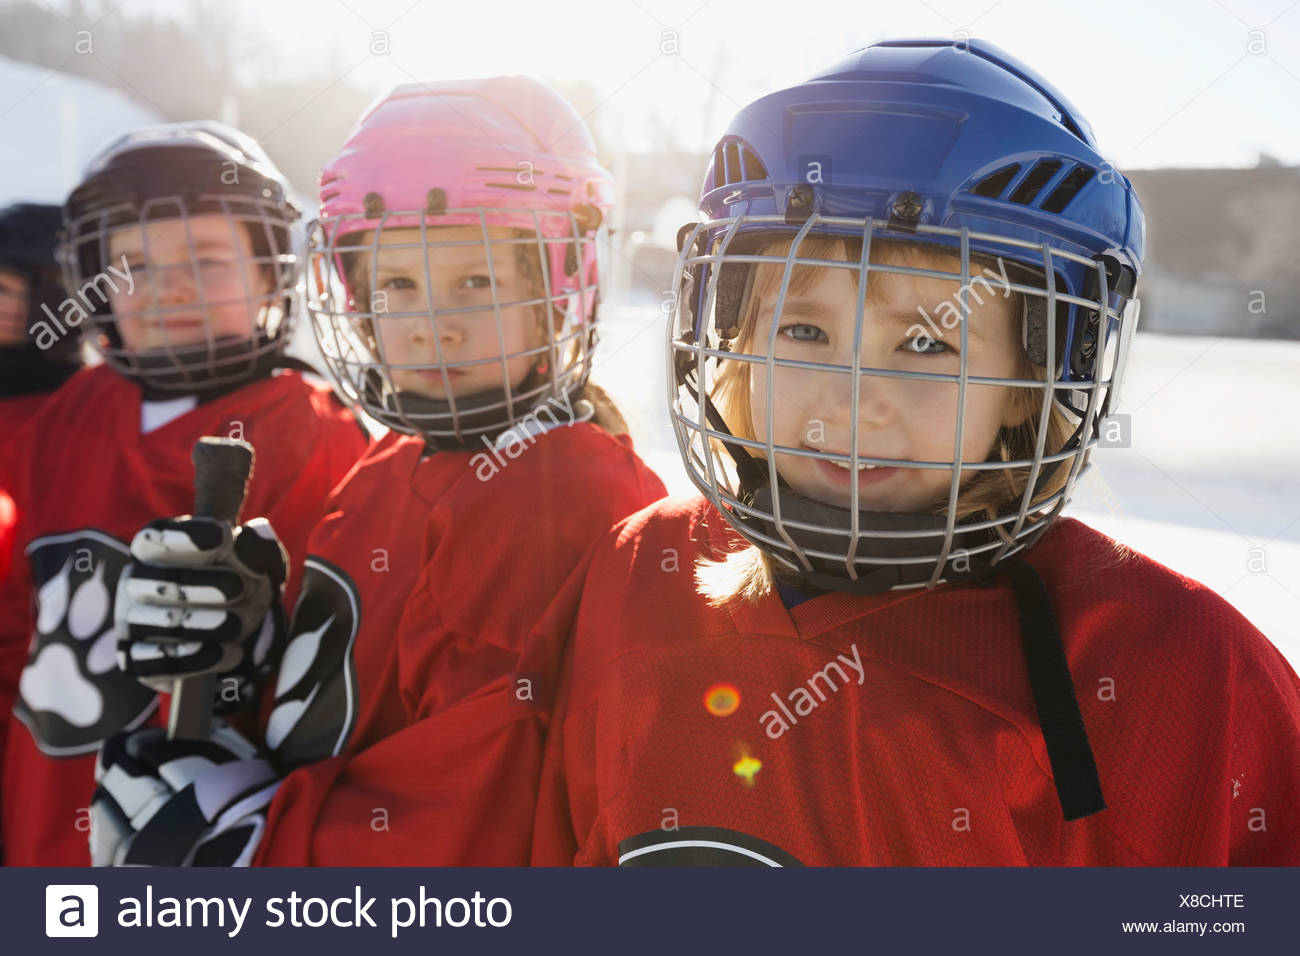 Ice Hockey Uniform Stock Photos & Ice Hockey Uniform Stock